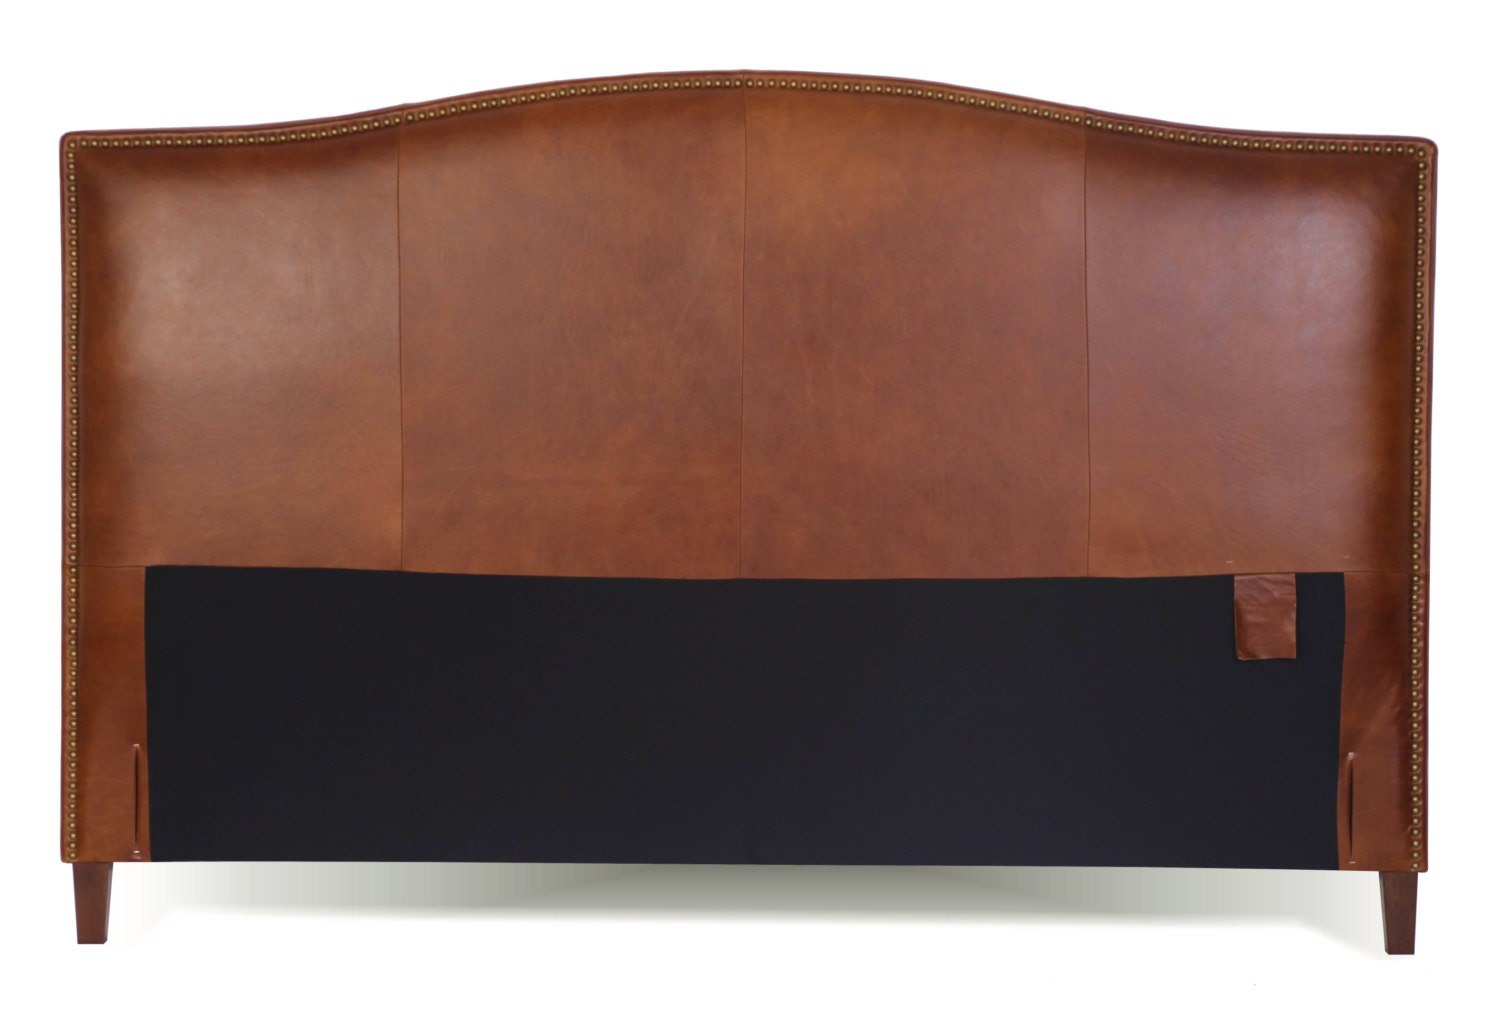 King Headboard Size King Size Tobacco Brown Leather Headboard For Bed With Brass Nail